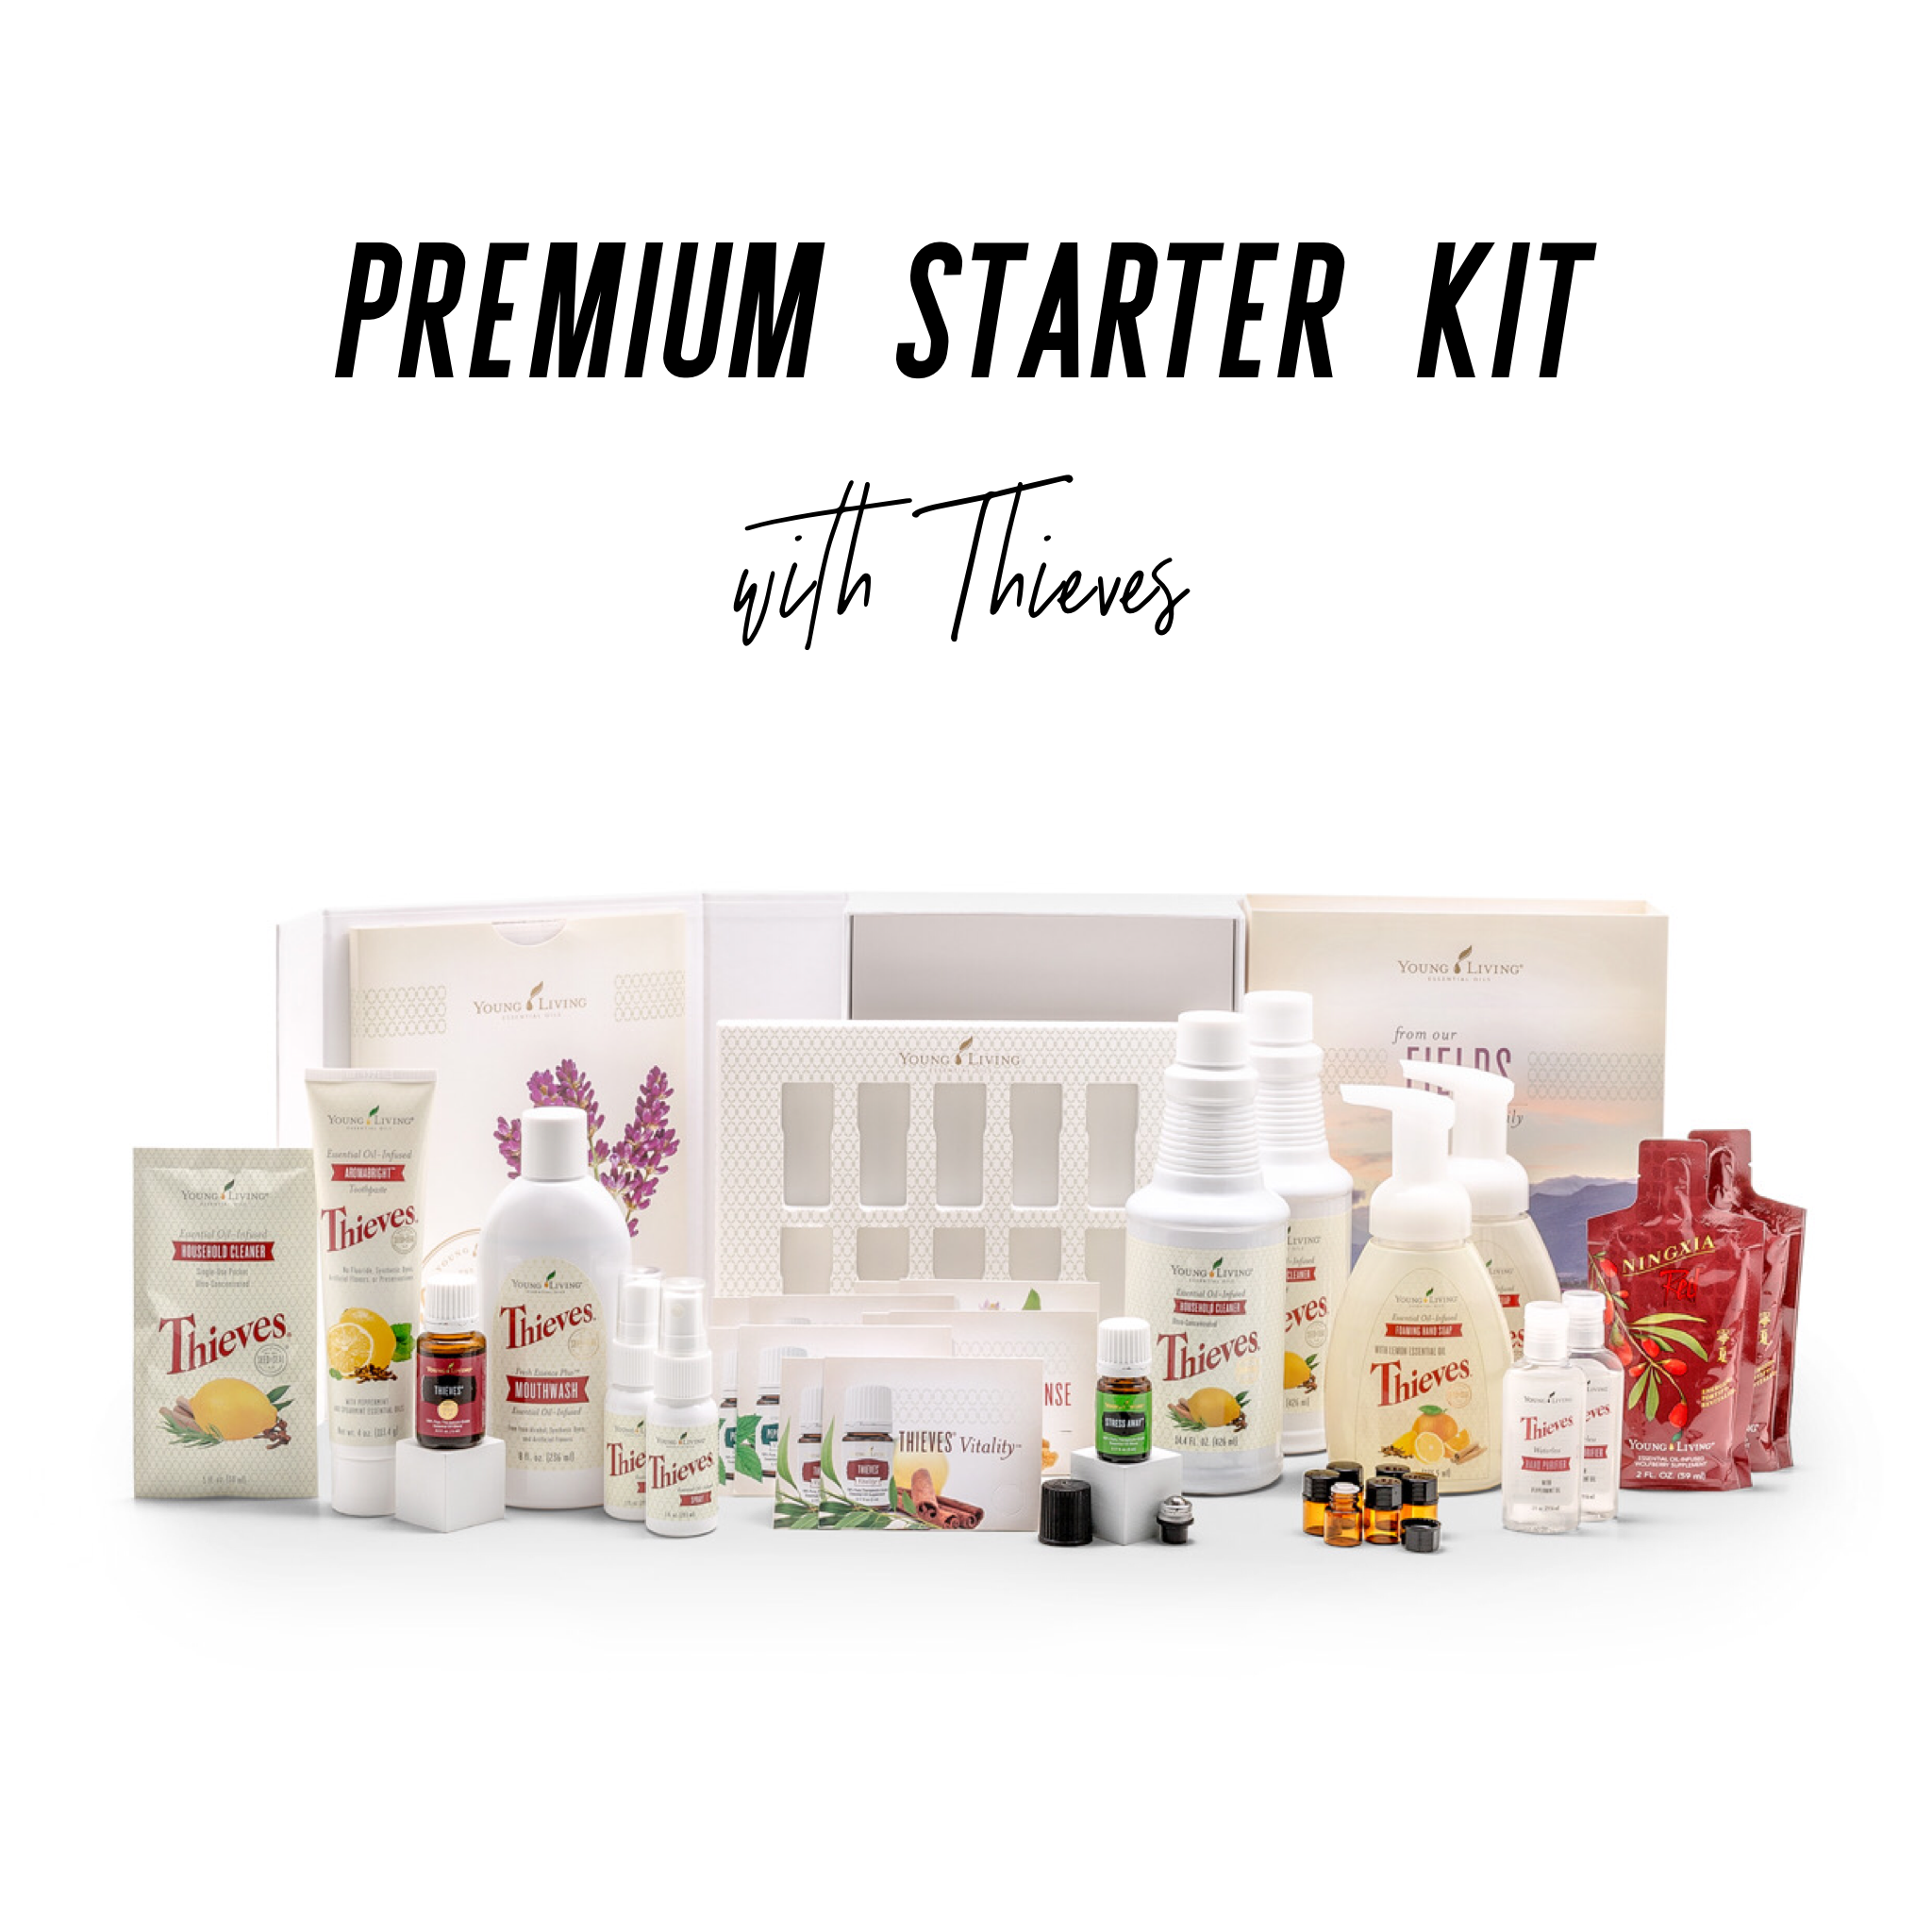 - Another part of your wellness journey is getting toxic chemicals out of our homes. There are so many chemicals in our every day products that are messing with our bodies in ways we don't even know. The Thieves starter kit is an all-inclusive way to ditch the chemical products in your home (like household cleaners), and start with using plant-based products. You also receive a bottle of Thieves and Stress Away essential oils to help you dip your toes into the essential oil world.